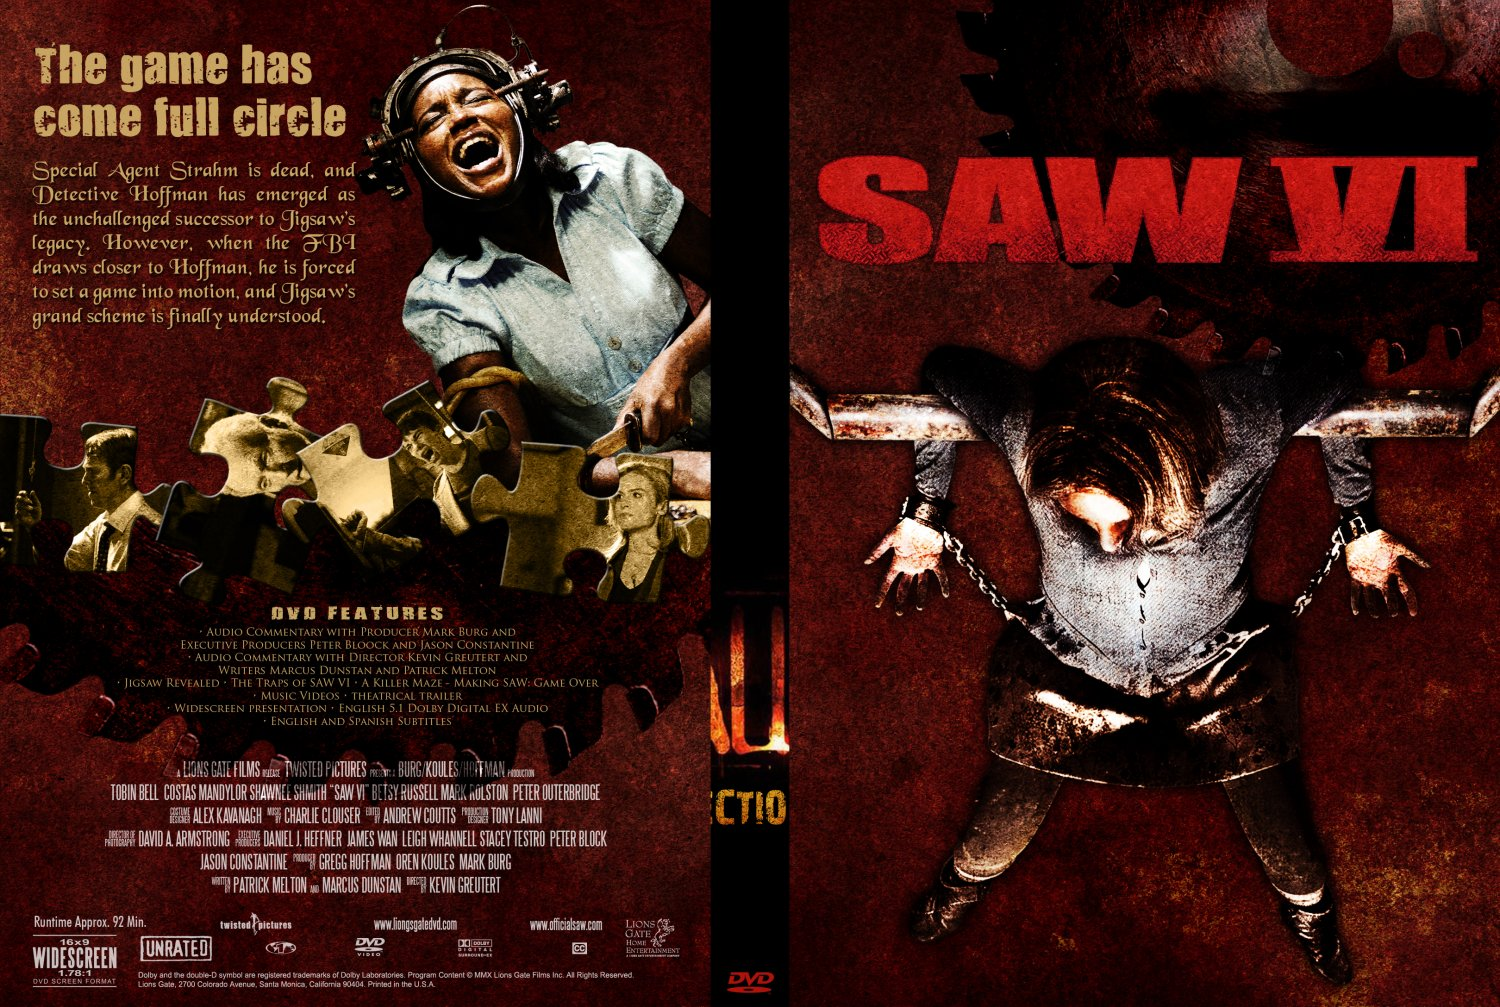 Saw Movies Dvd Covers Saw 1 Movie Cover